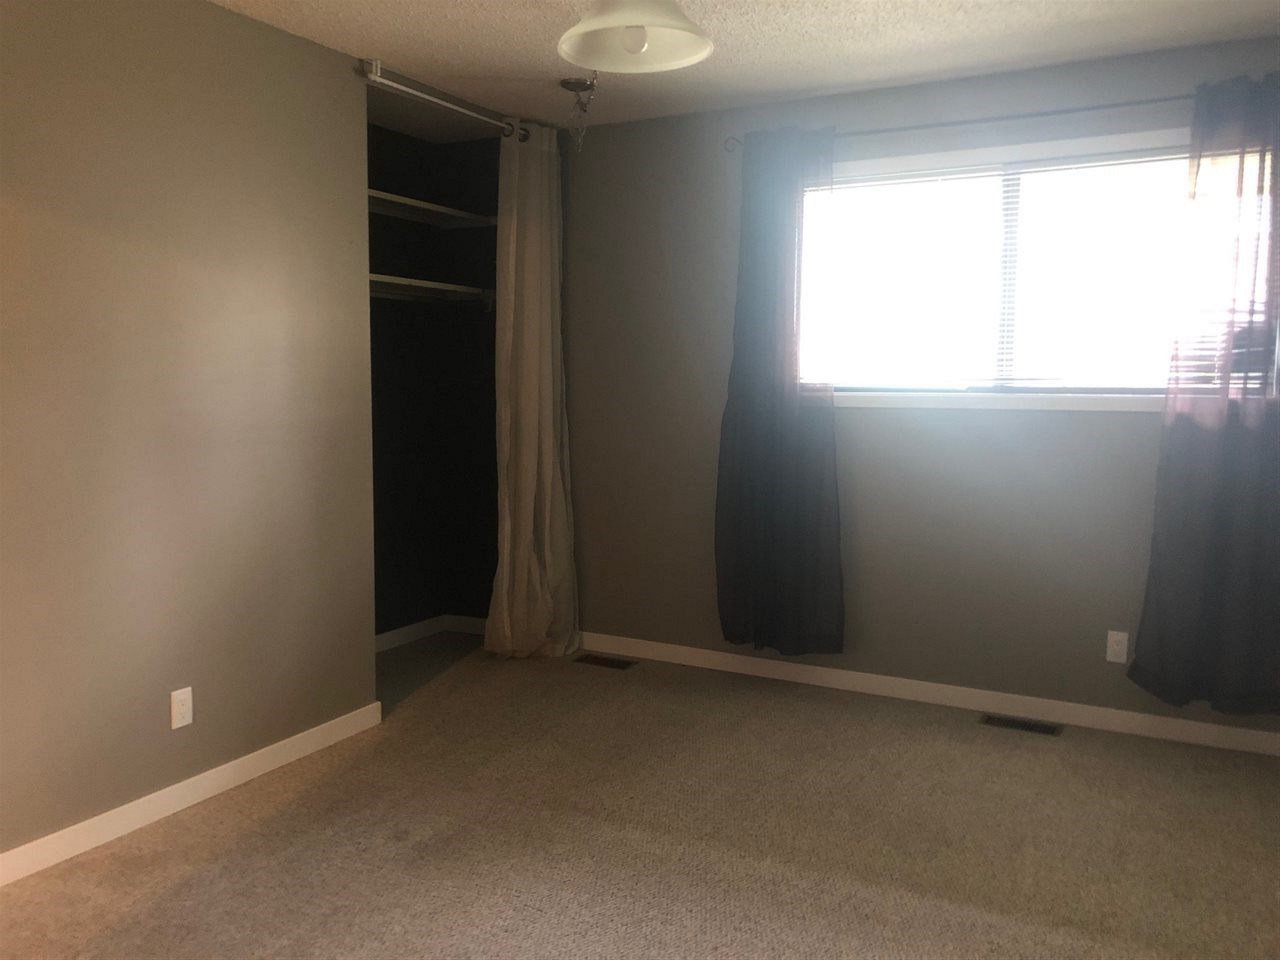 "Photo 15: Photos: 47 800 N 2ND Avenue: Williams Lake - City Condo for sale in ""HIGHWOOD PARK"" (Williams Lake (Zone 27))  : MLS®# R2415616"